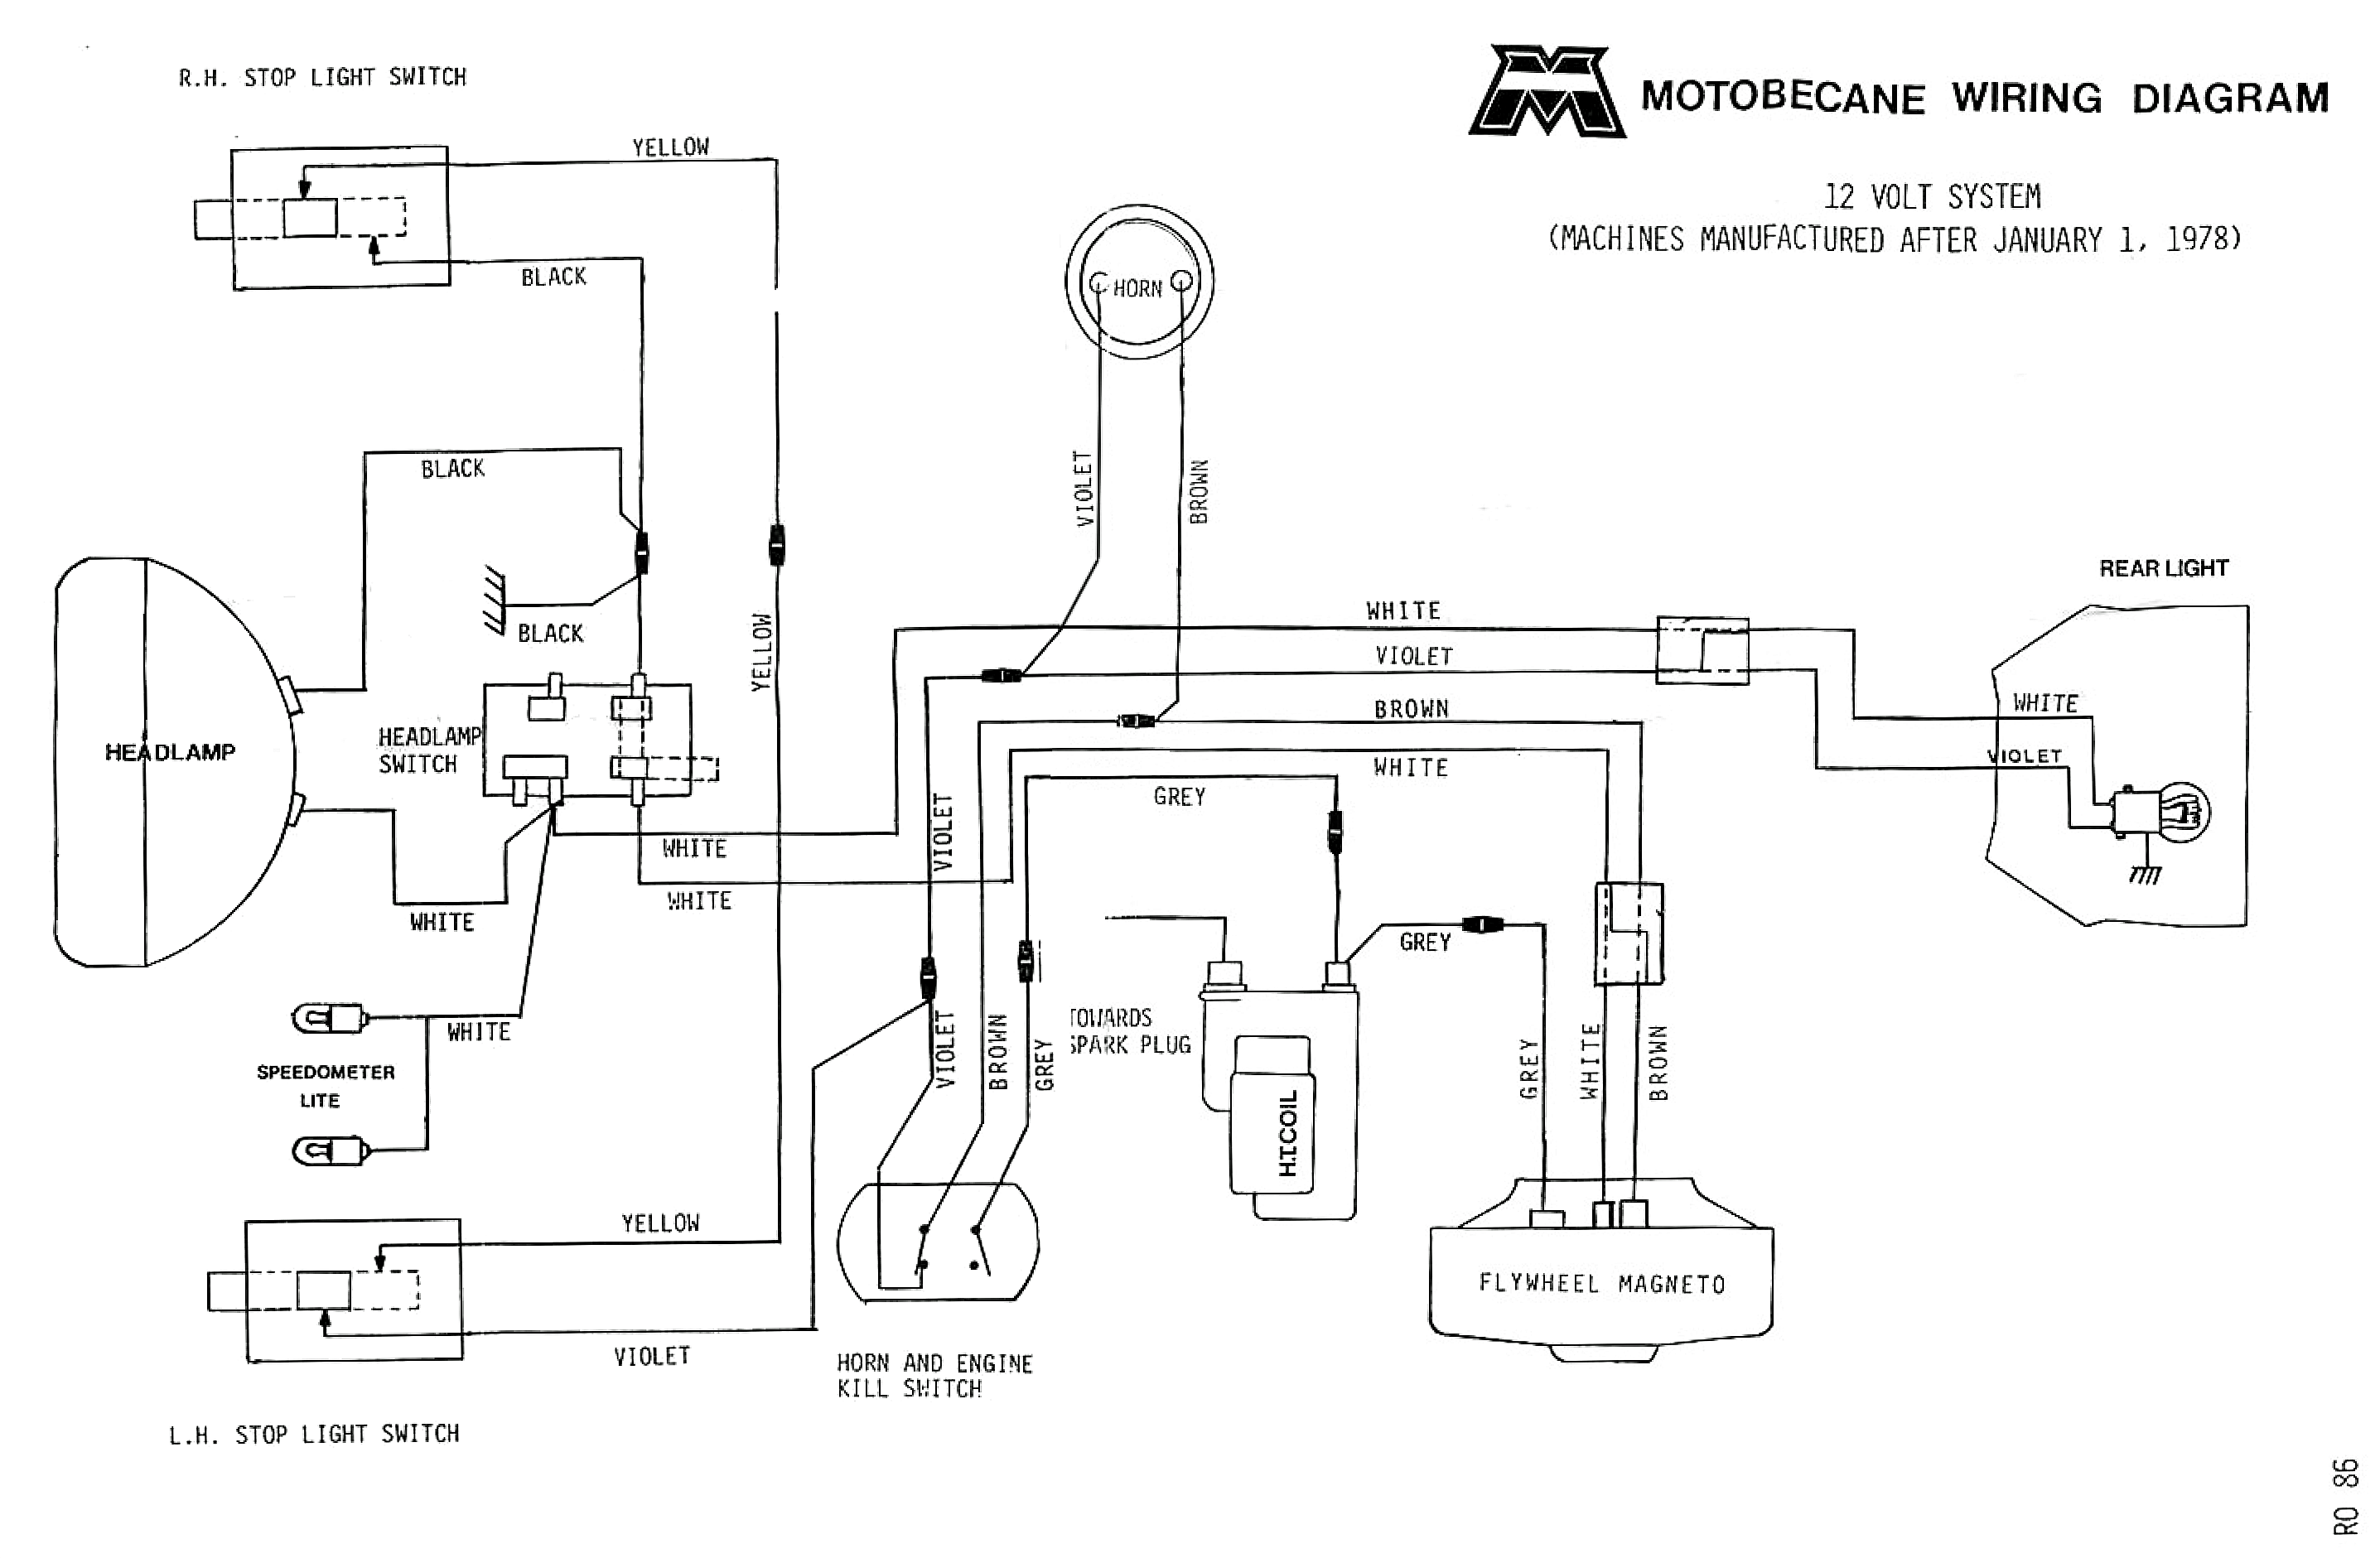 Motobecane12v_wiring_diagram motobecane wiring diagrams moped wiki 12 volt wiring diagram at bayanpartner.co